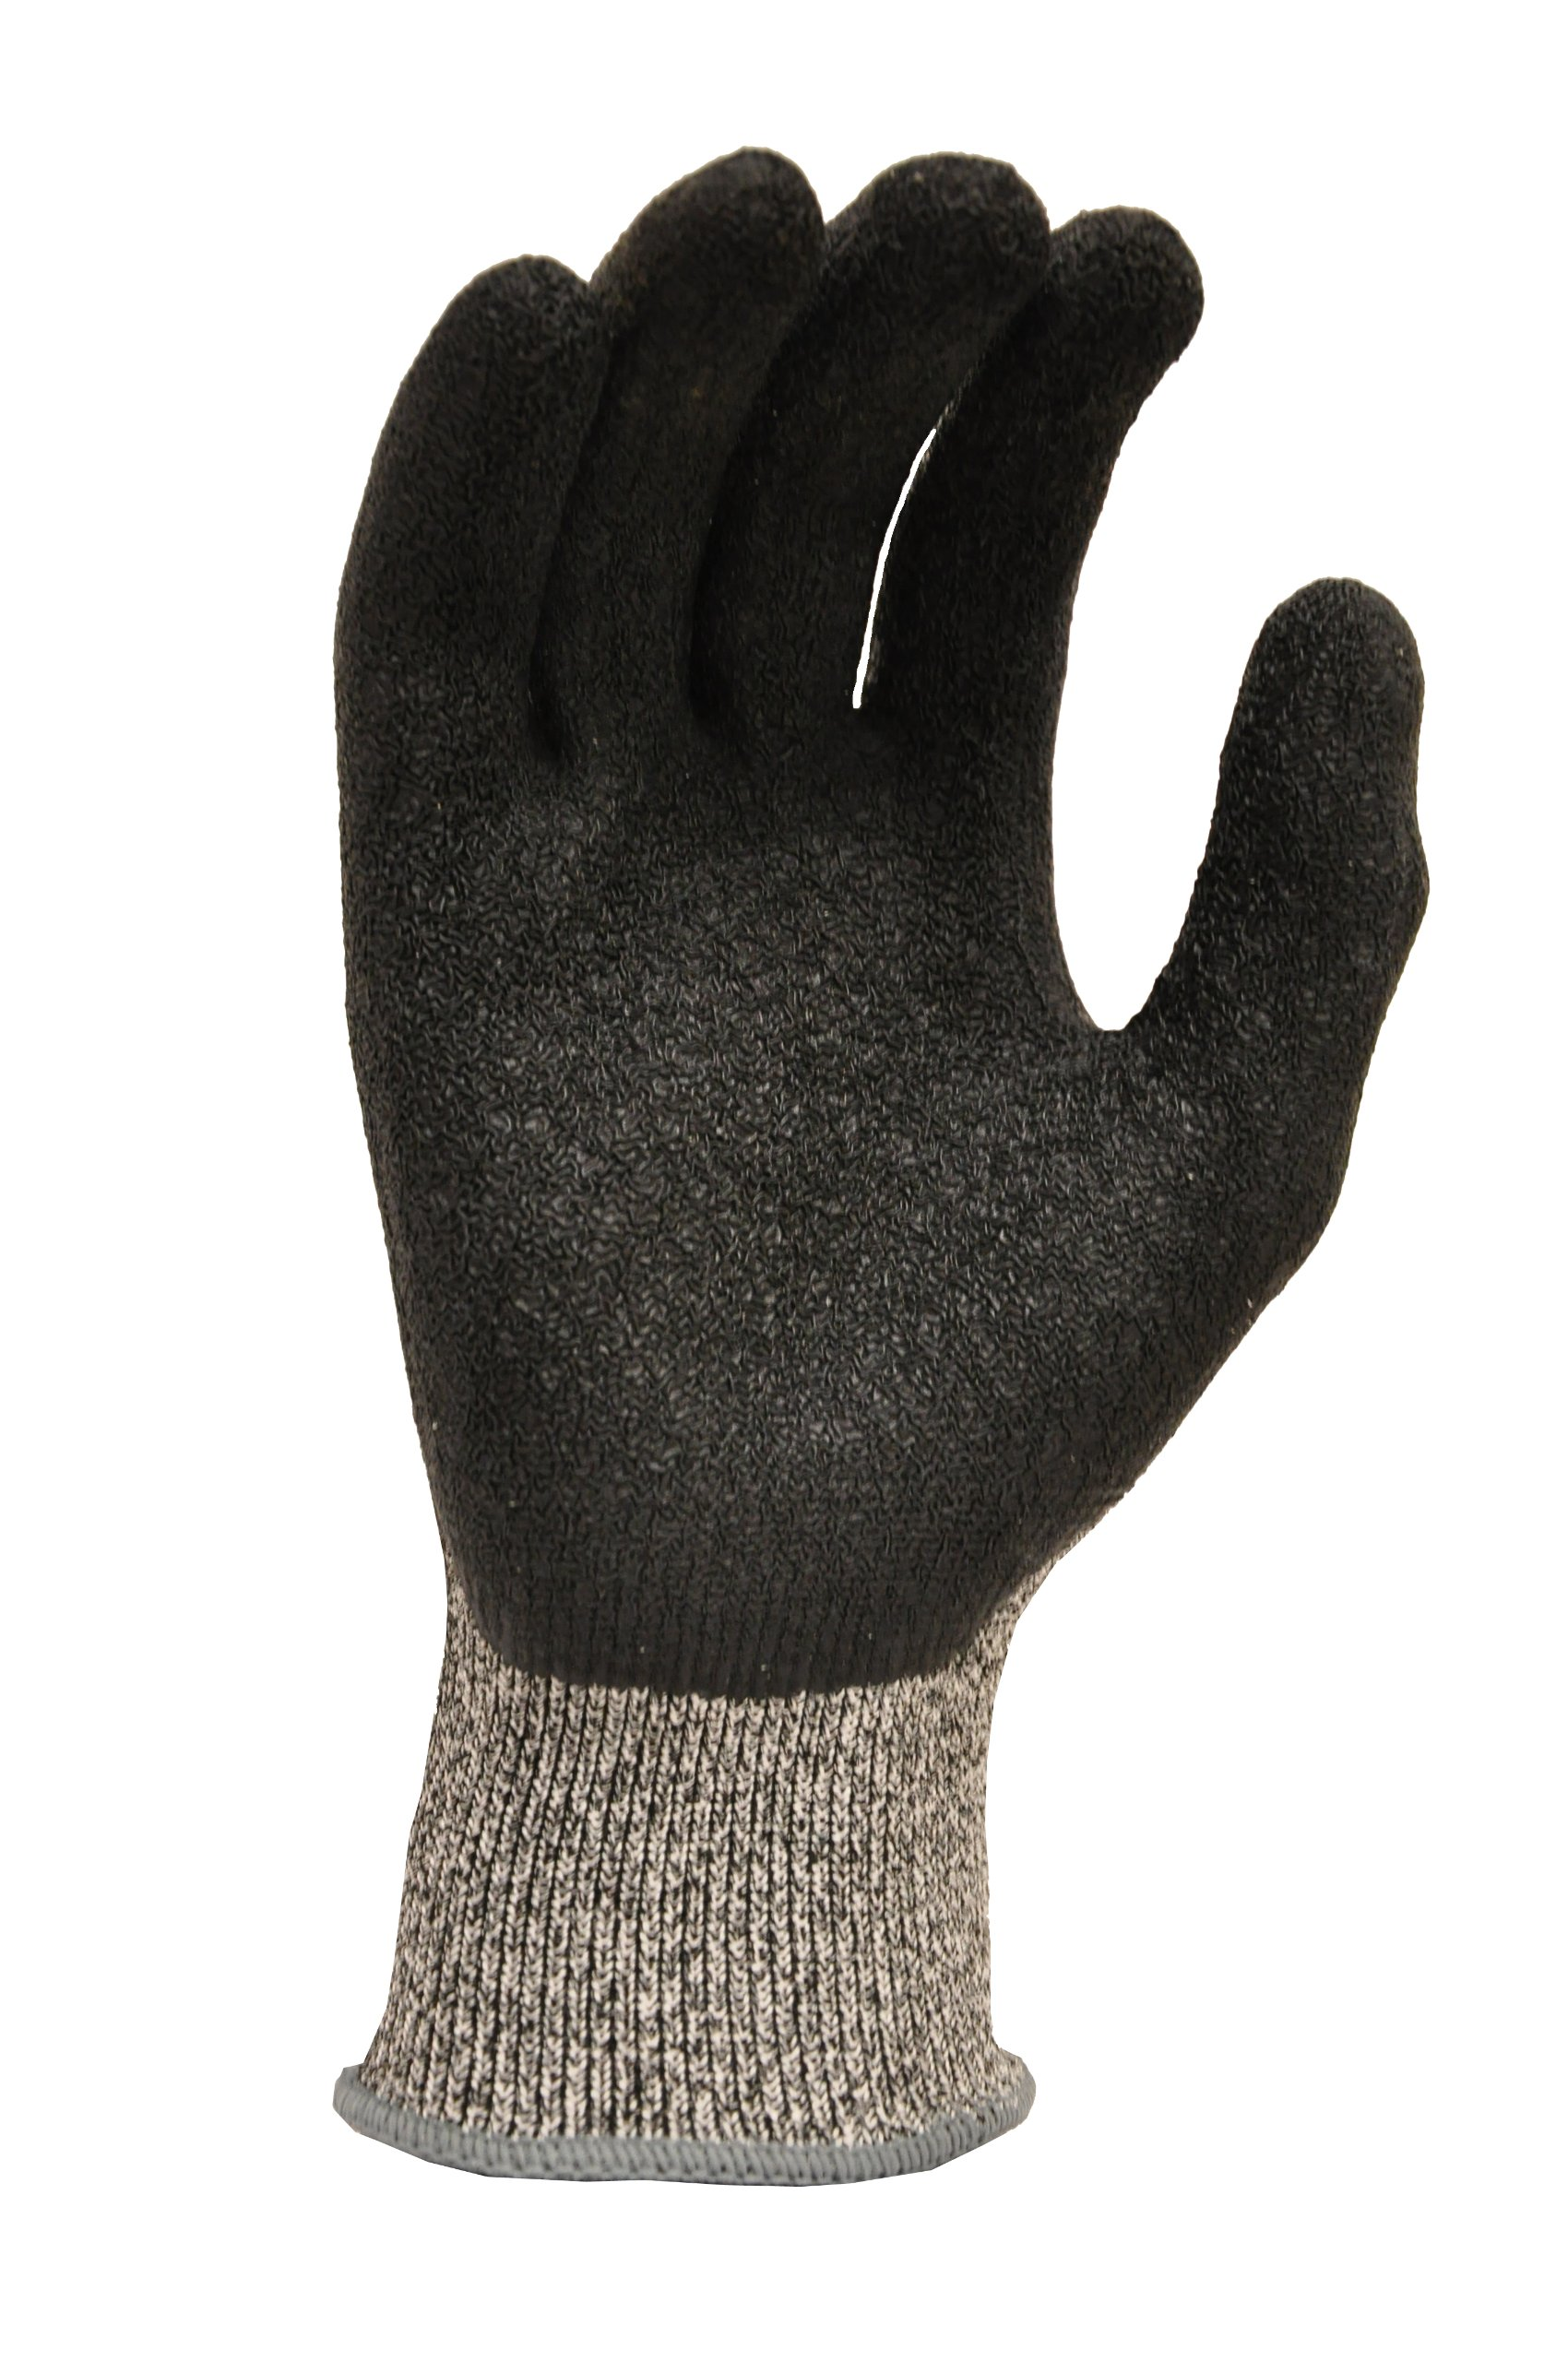 G & F 22600L CUTShield Cut Resistant Level 5 Work Gloves, Rubber Coated, grey, Large